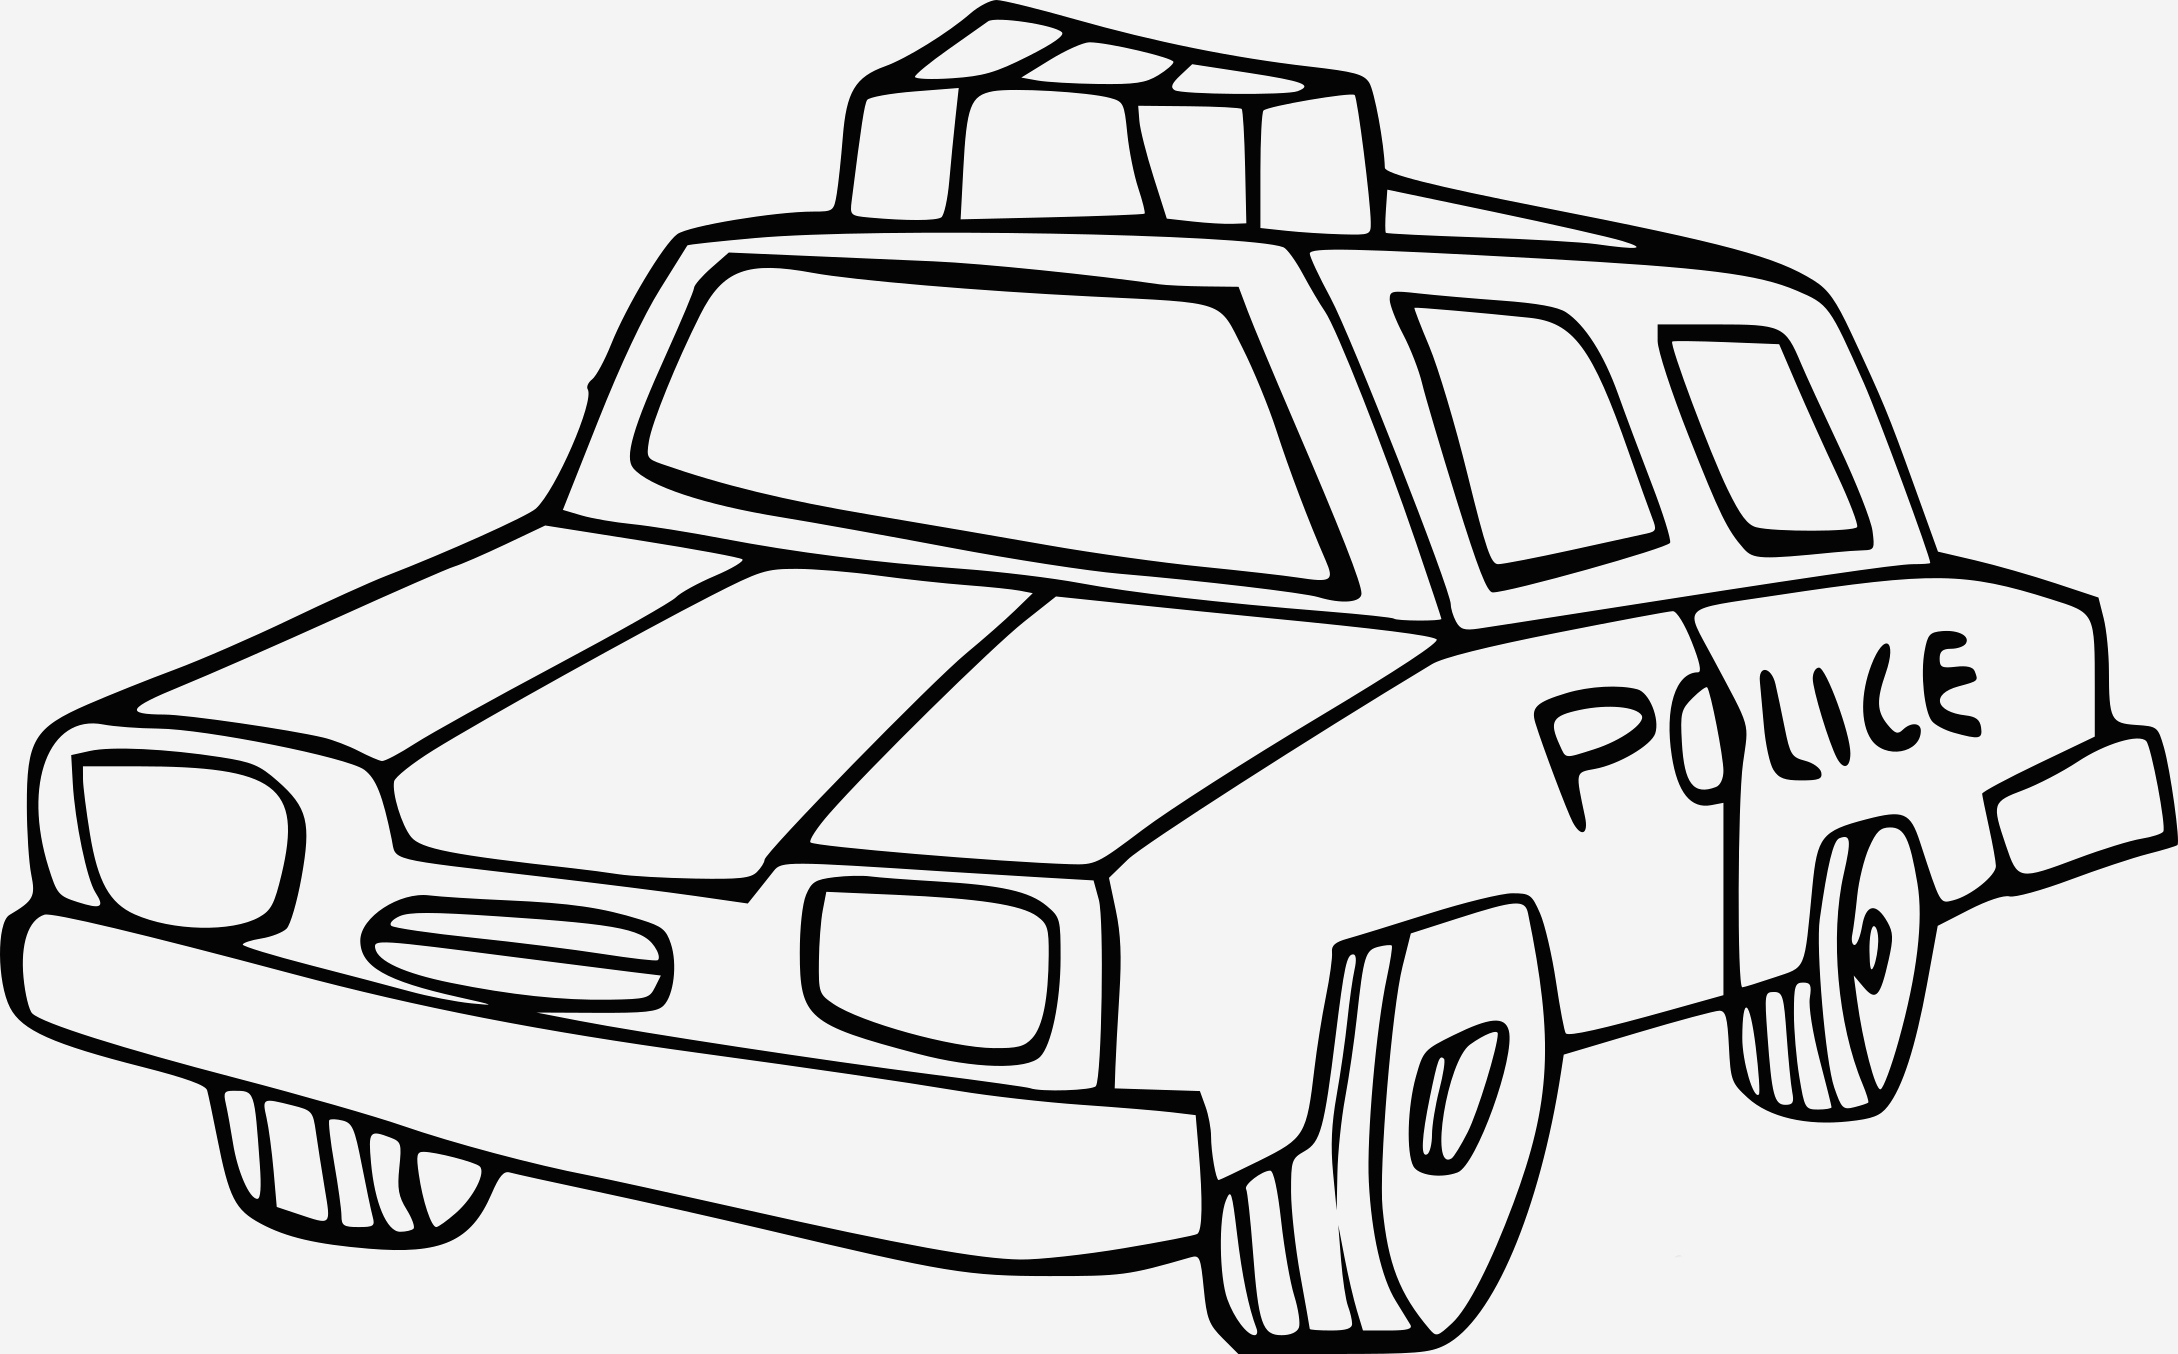 Coloriage Voiture De Police Lovely Coloriage Voiture De Police  Imprimer Of Coloriage Voiture De Police